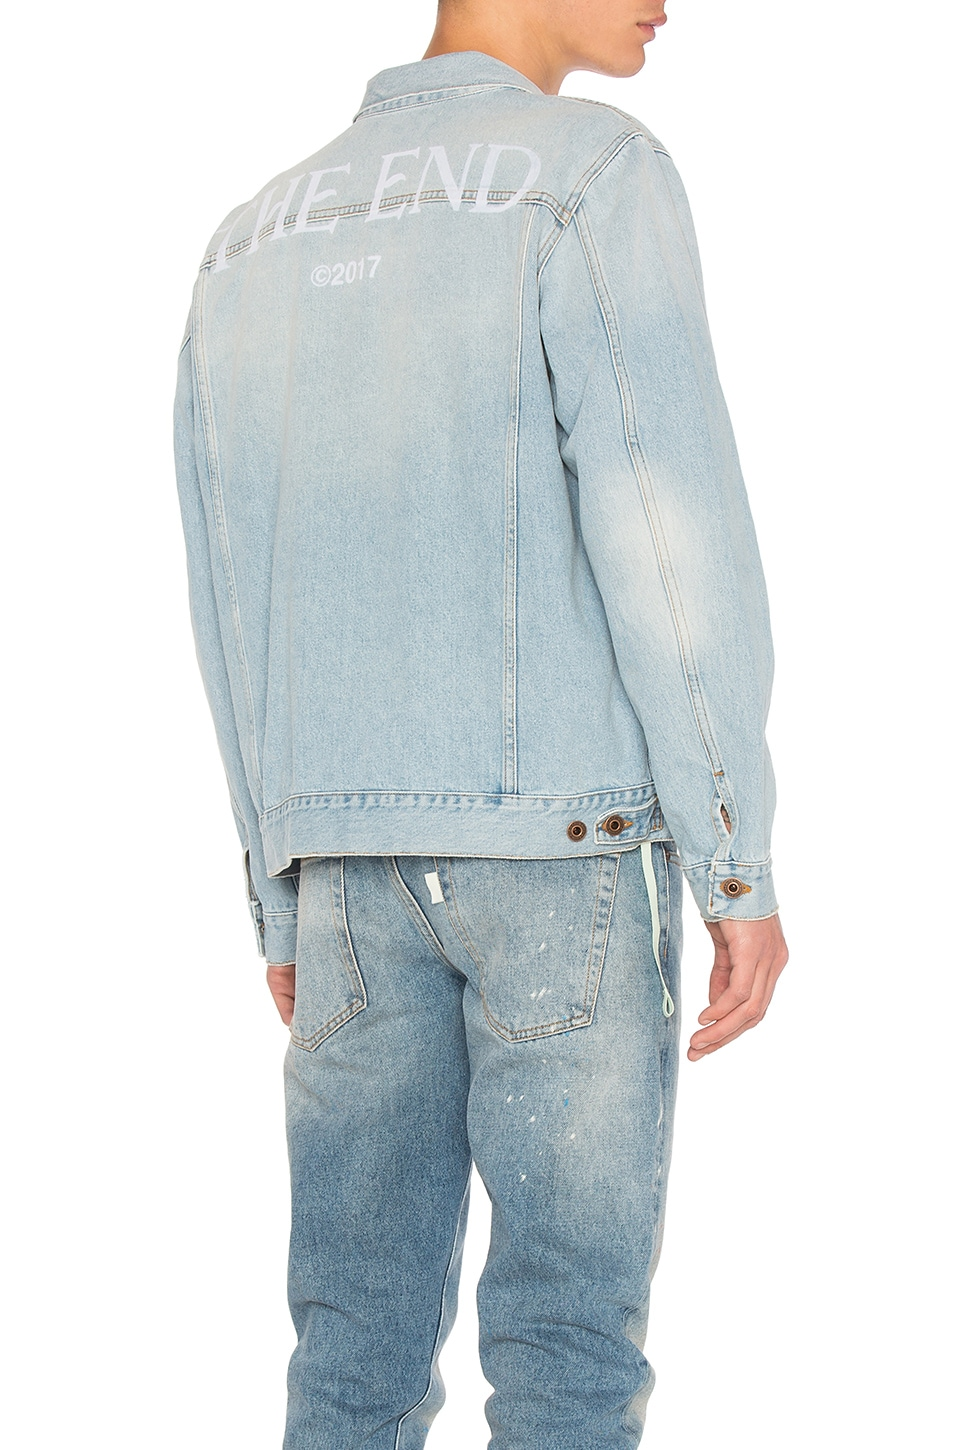 Scorpian Denim Jacket by OFF-WHITE